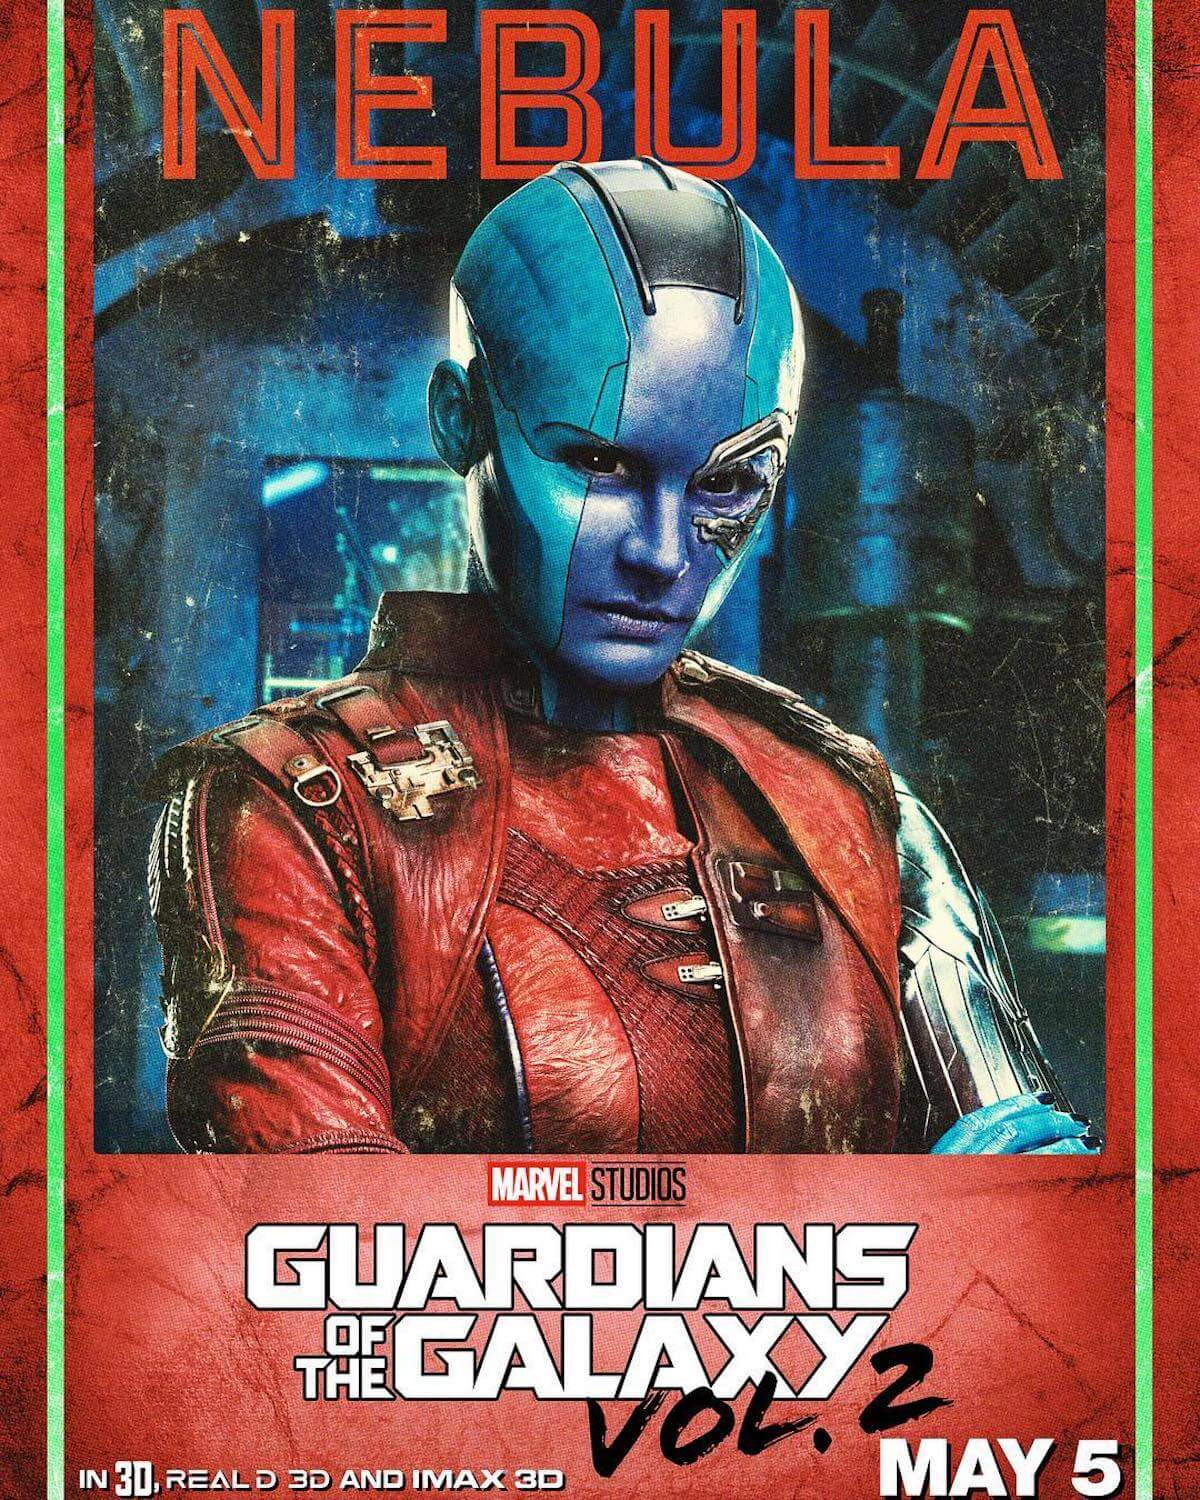 Guardians of the galaxy 2 poster nebula karen gillan